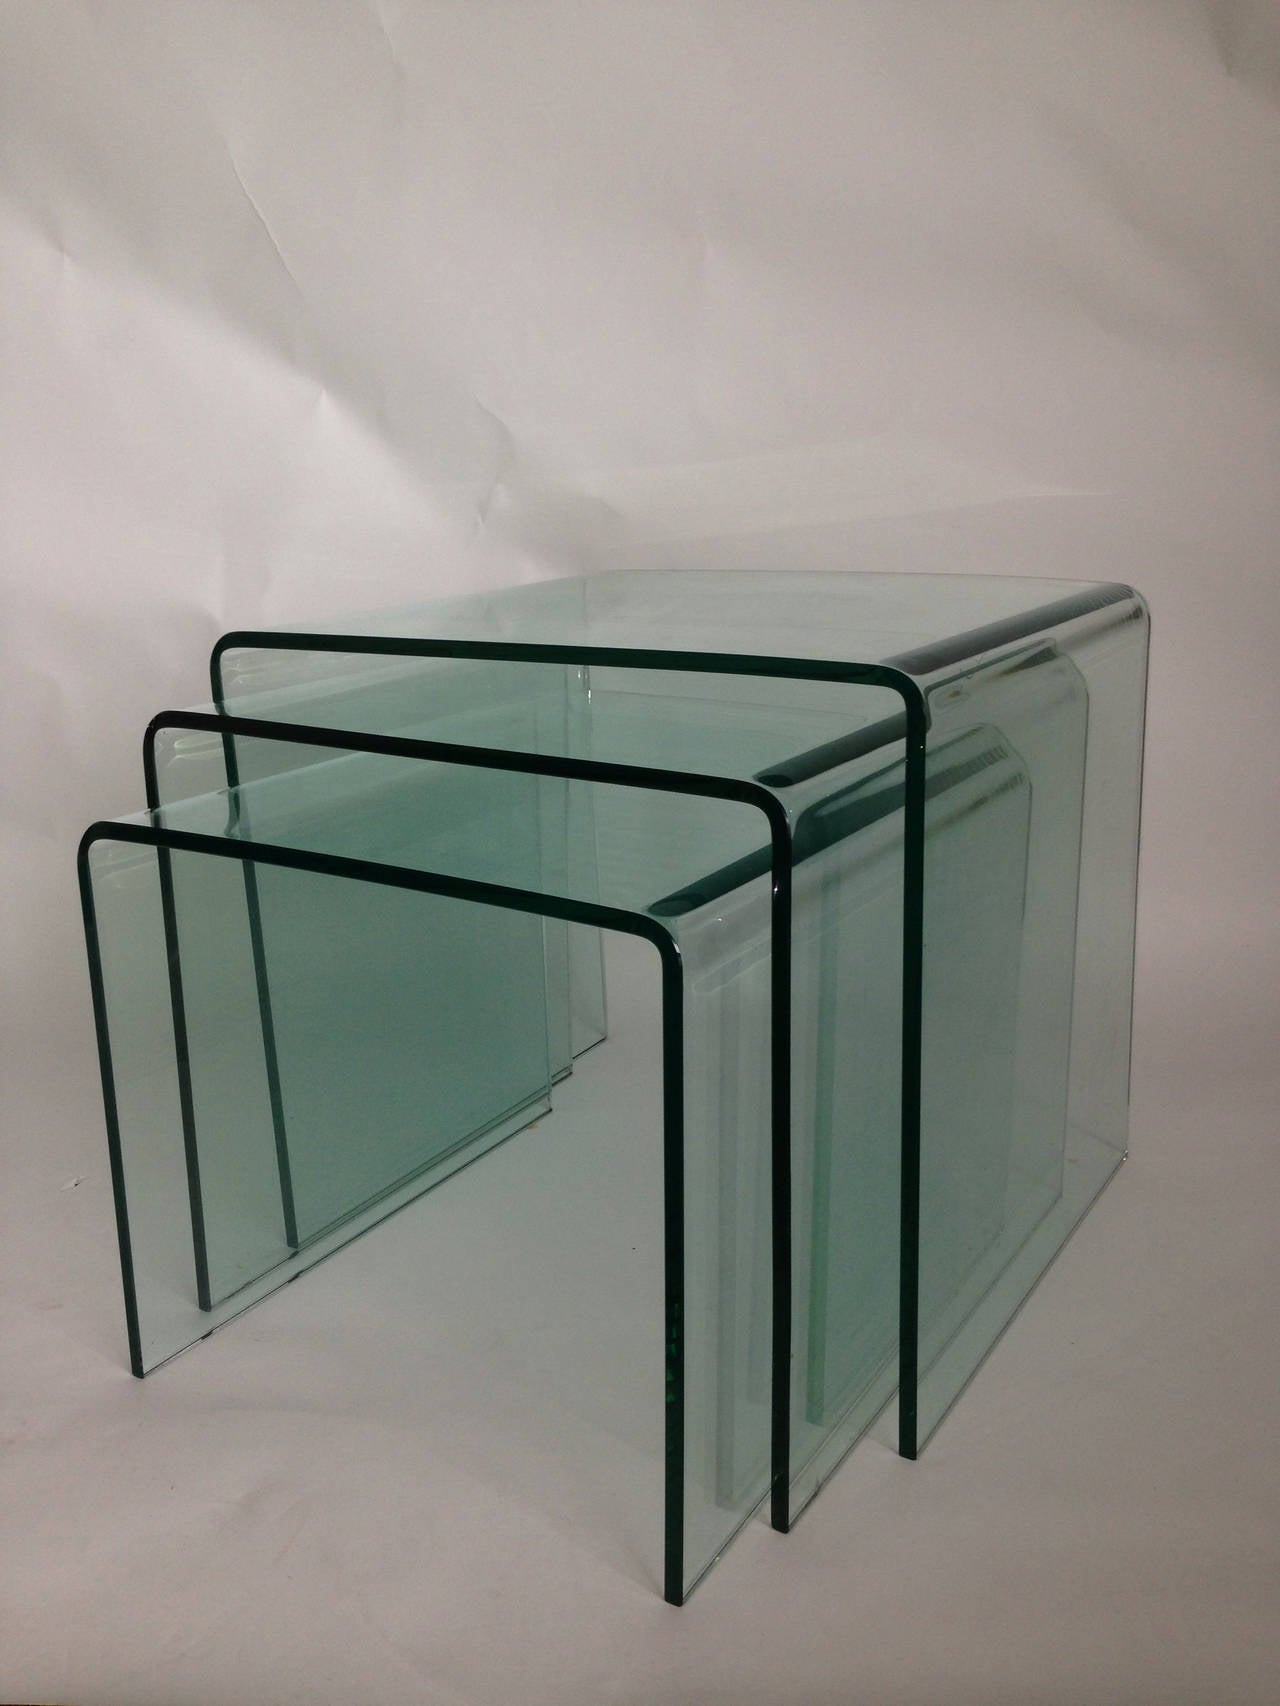 Made of tempered green glass, these nesting tables are wonderful together or apart.  Smaller table:  16 height, 17.5 wide, 19.75 deep